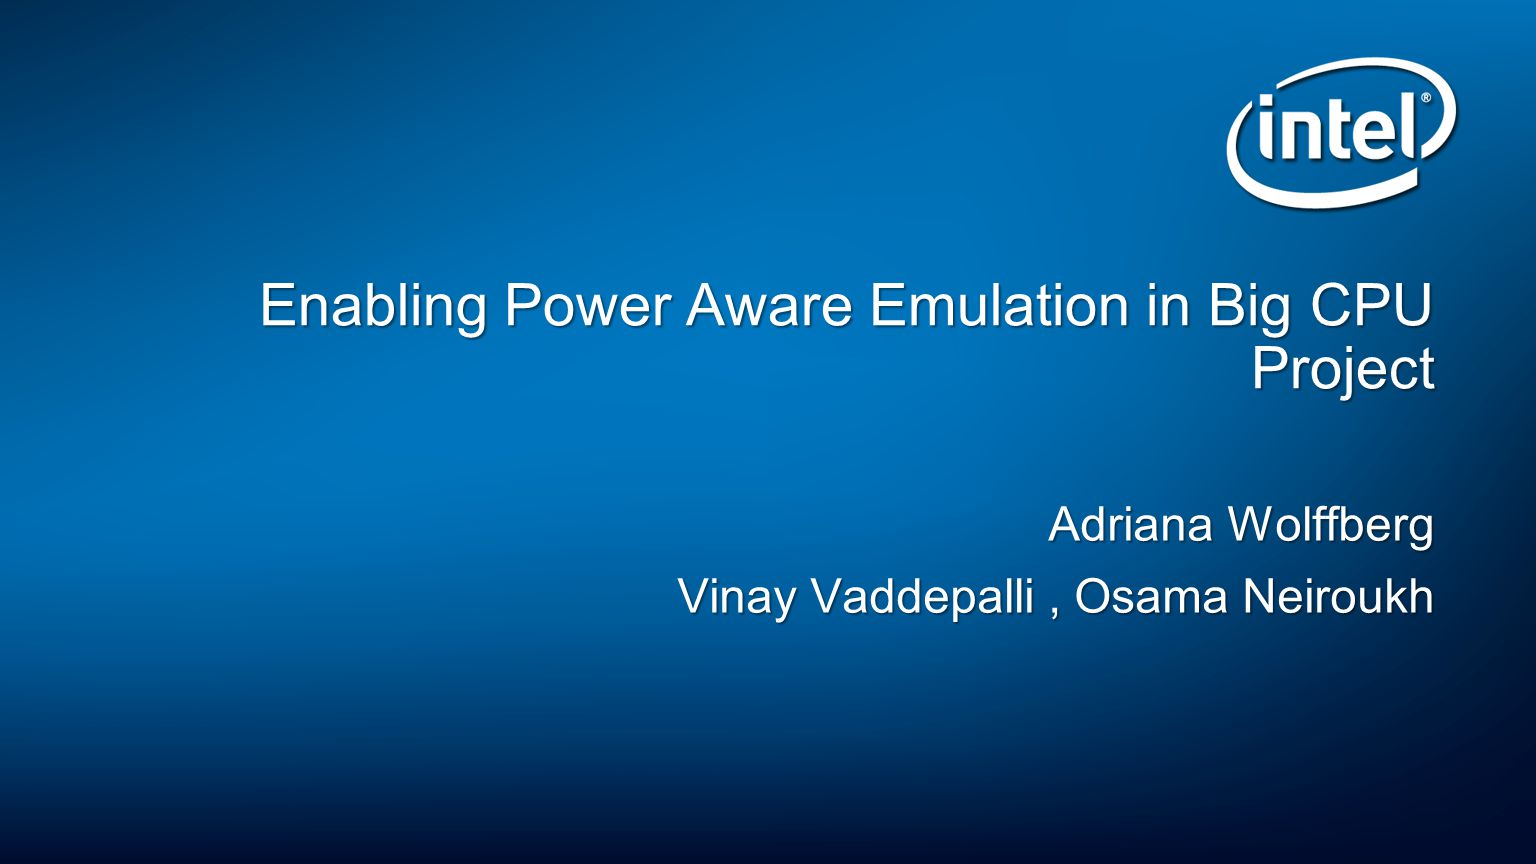 Enabling Power Aware Emulation in Big CPU Project Adriana Wolffberg Vinay Vaddepalli, Osama Neiroukh